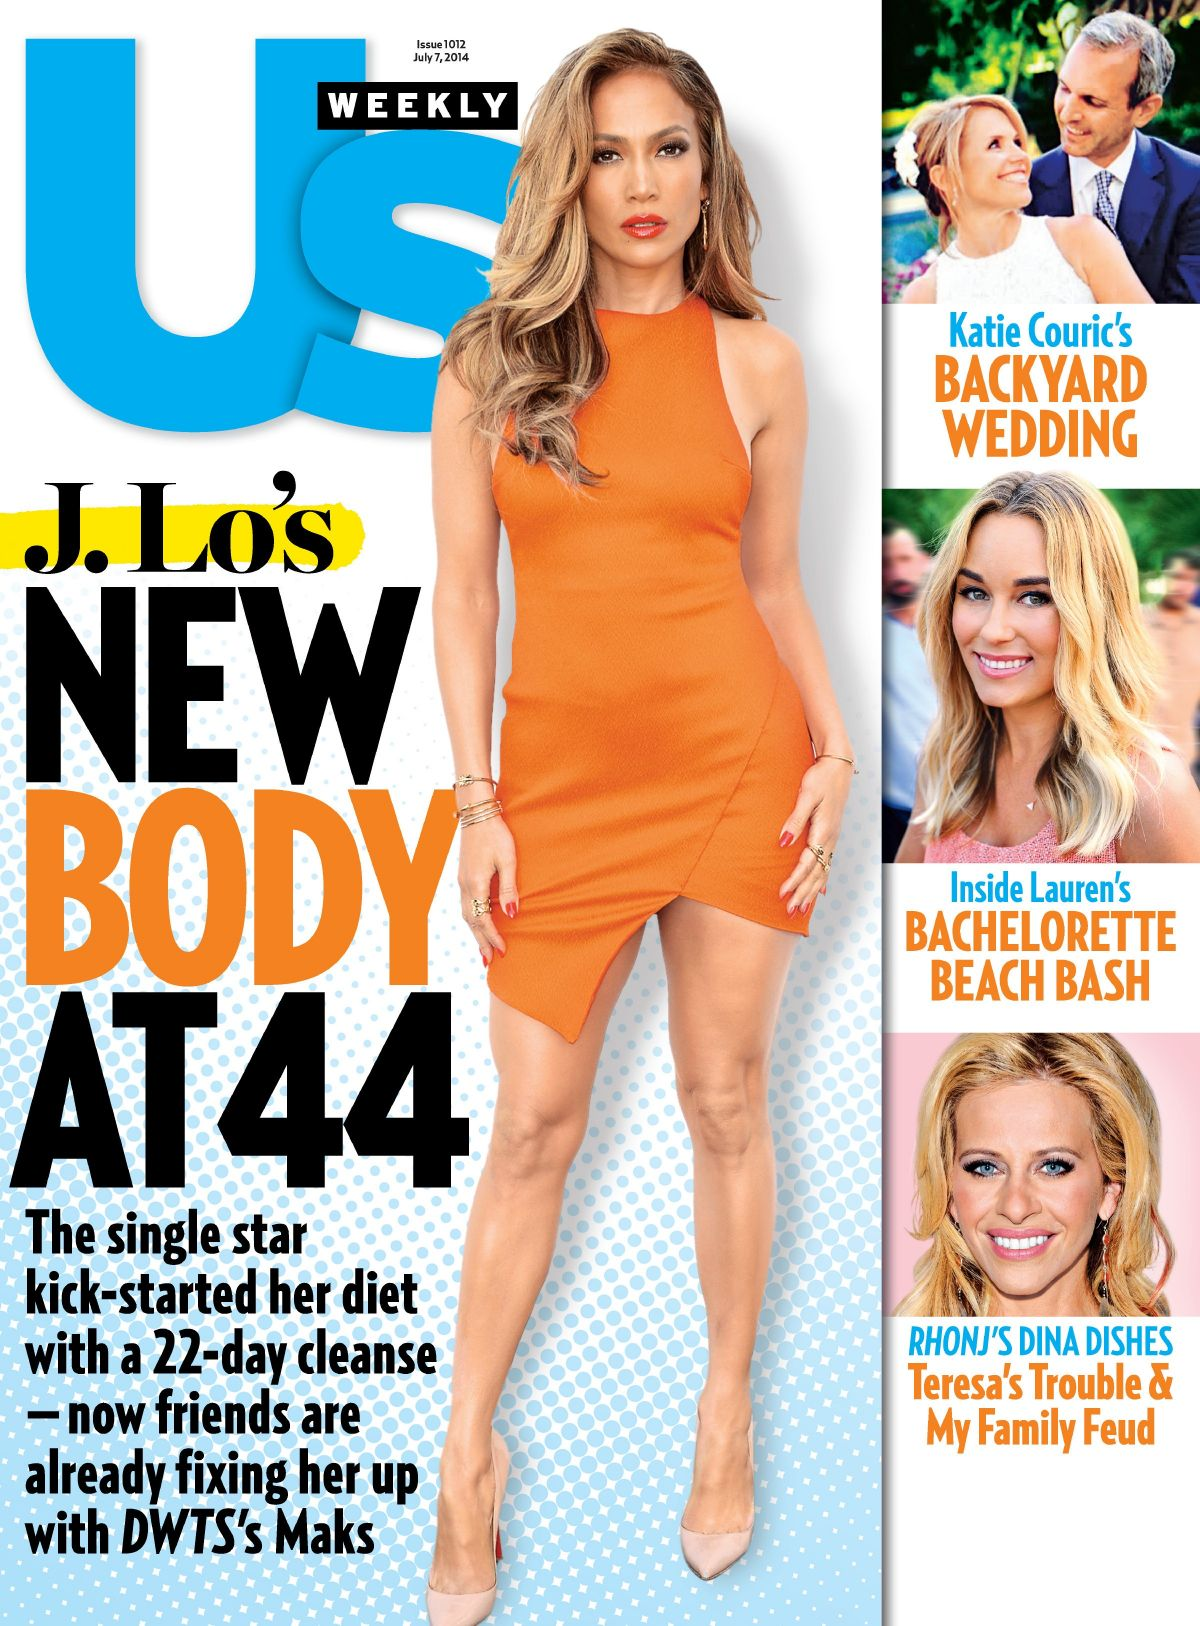 JENNIFER LOPEZ on the Cover of US Weekly Magazine, July 7th 2014 Issue